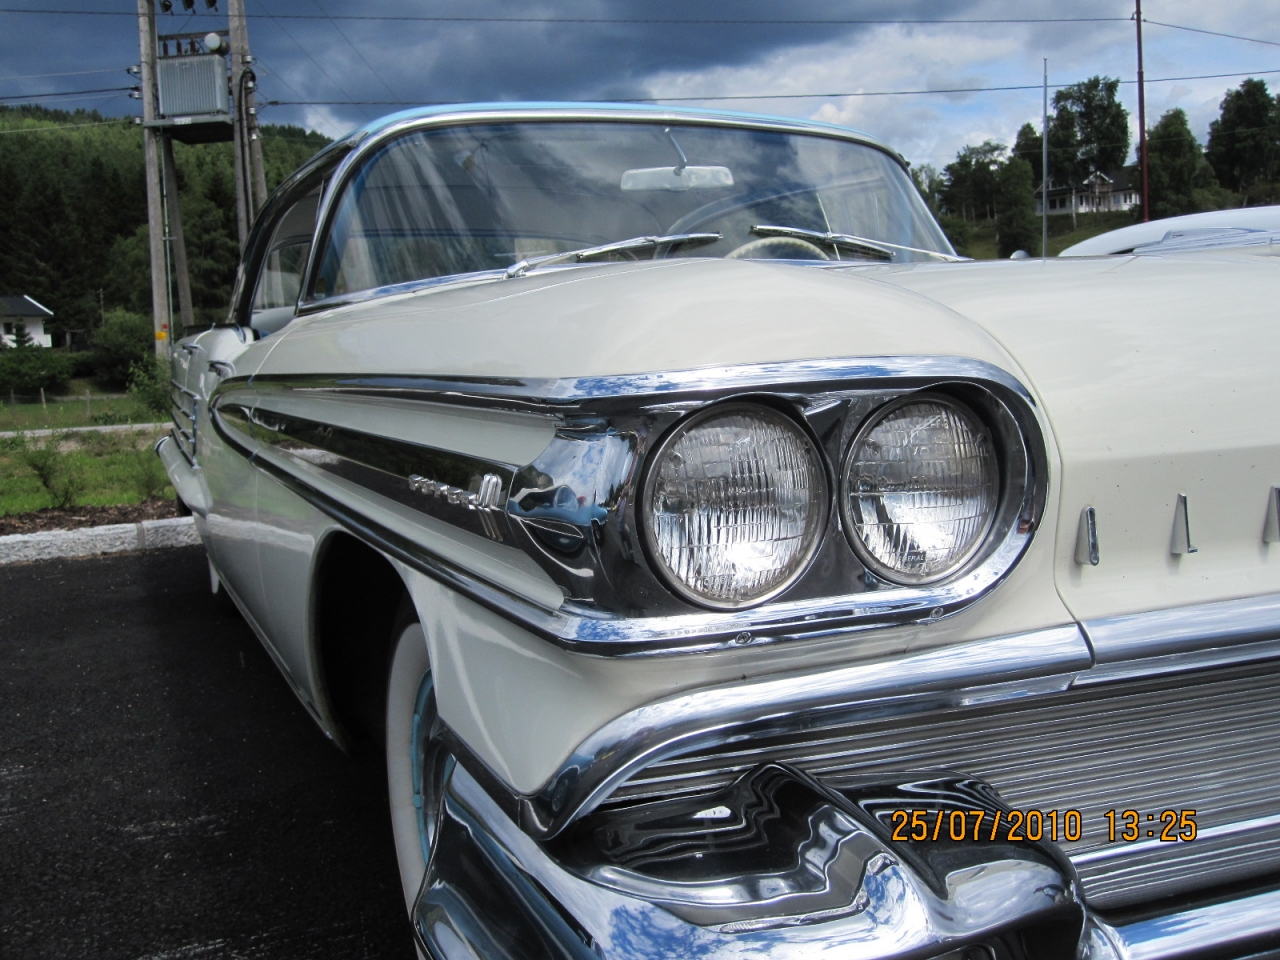 Kenneths_1958_Oldsmobile_Super_88_007